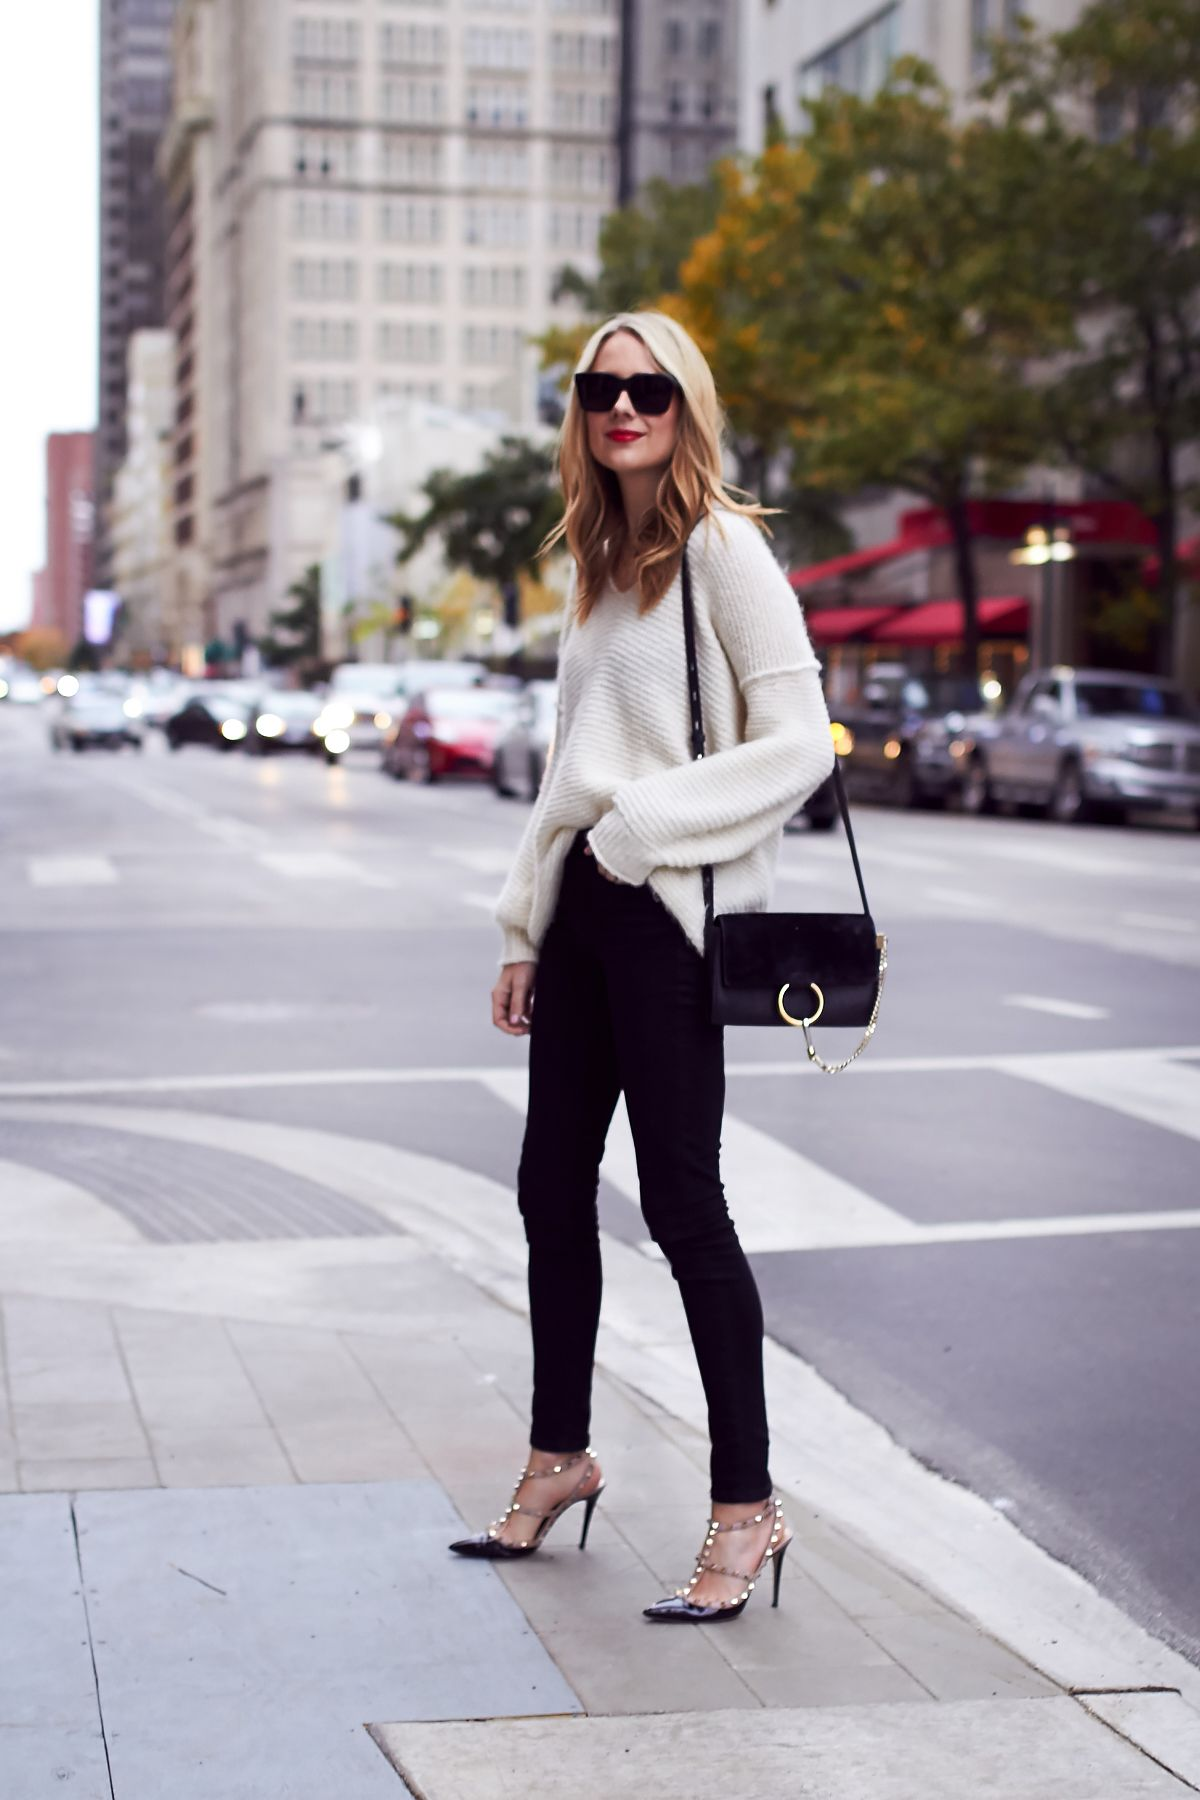 Fall Outfit Winter Outfit Ivory Sweater Black Skinny Jeans